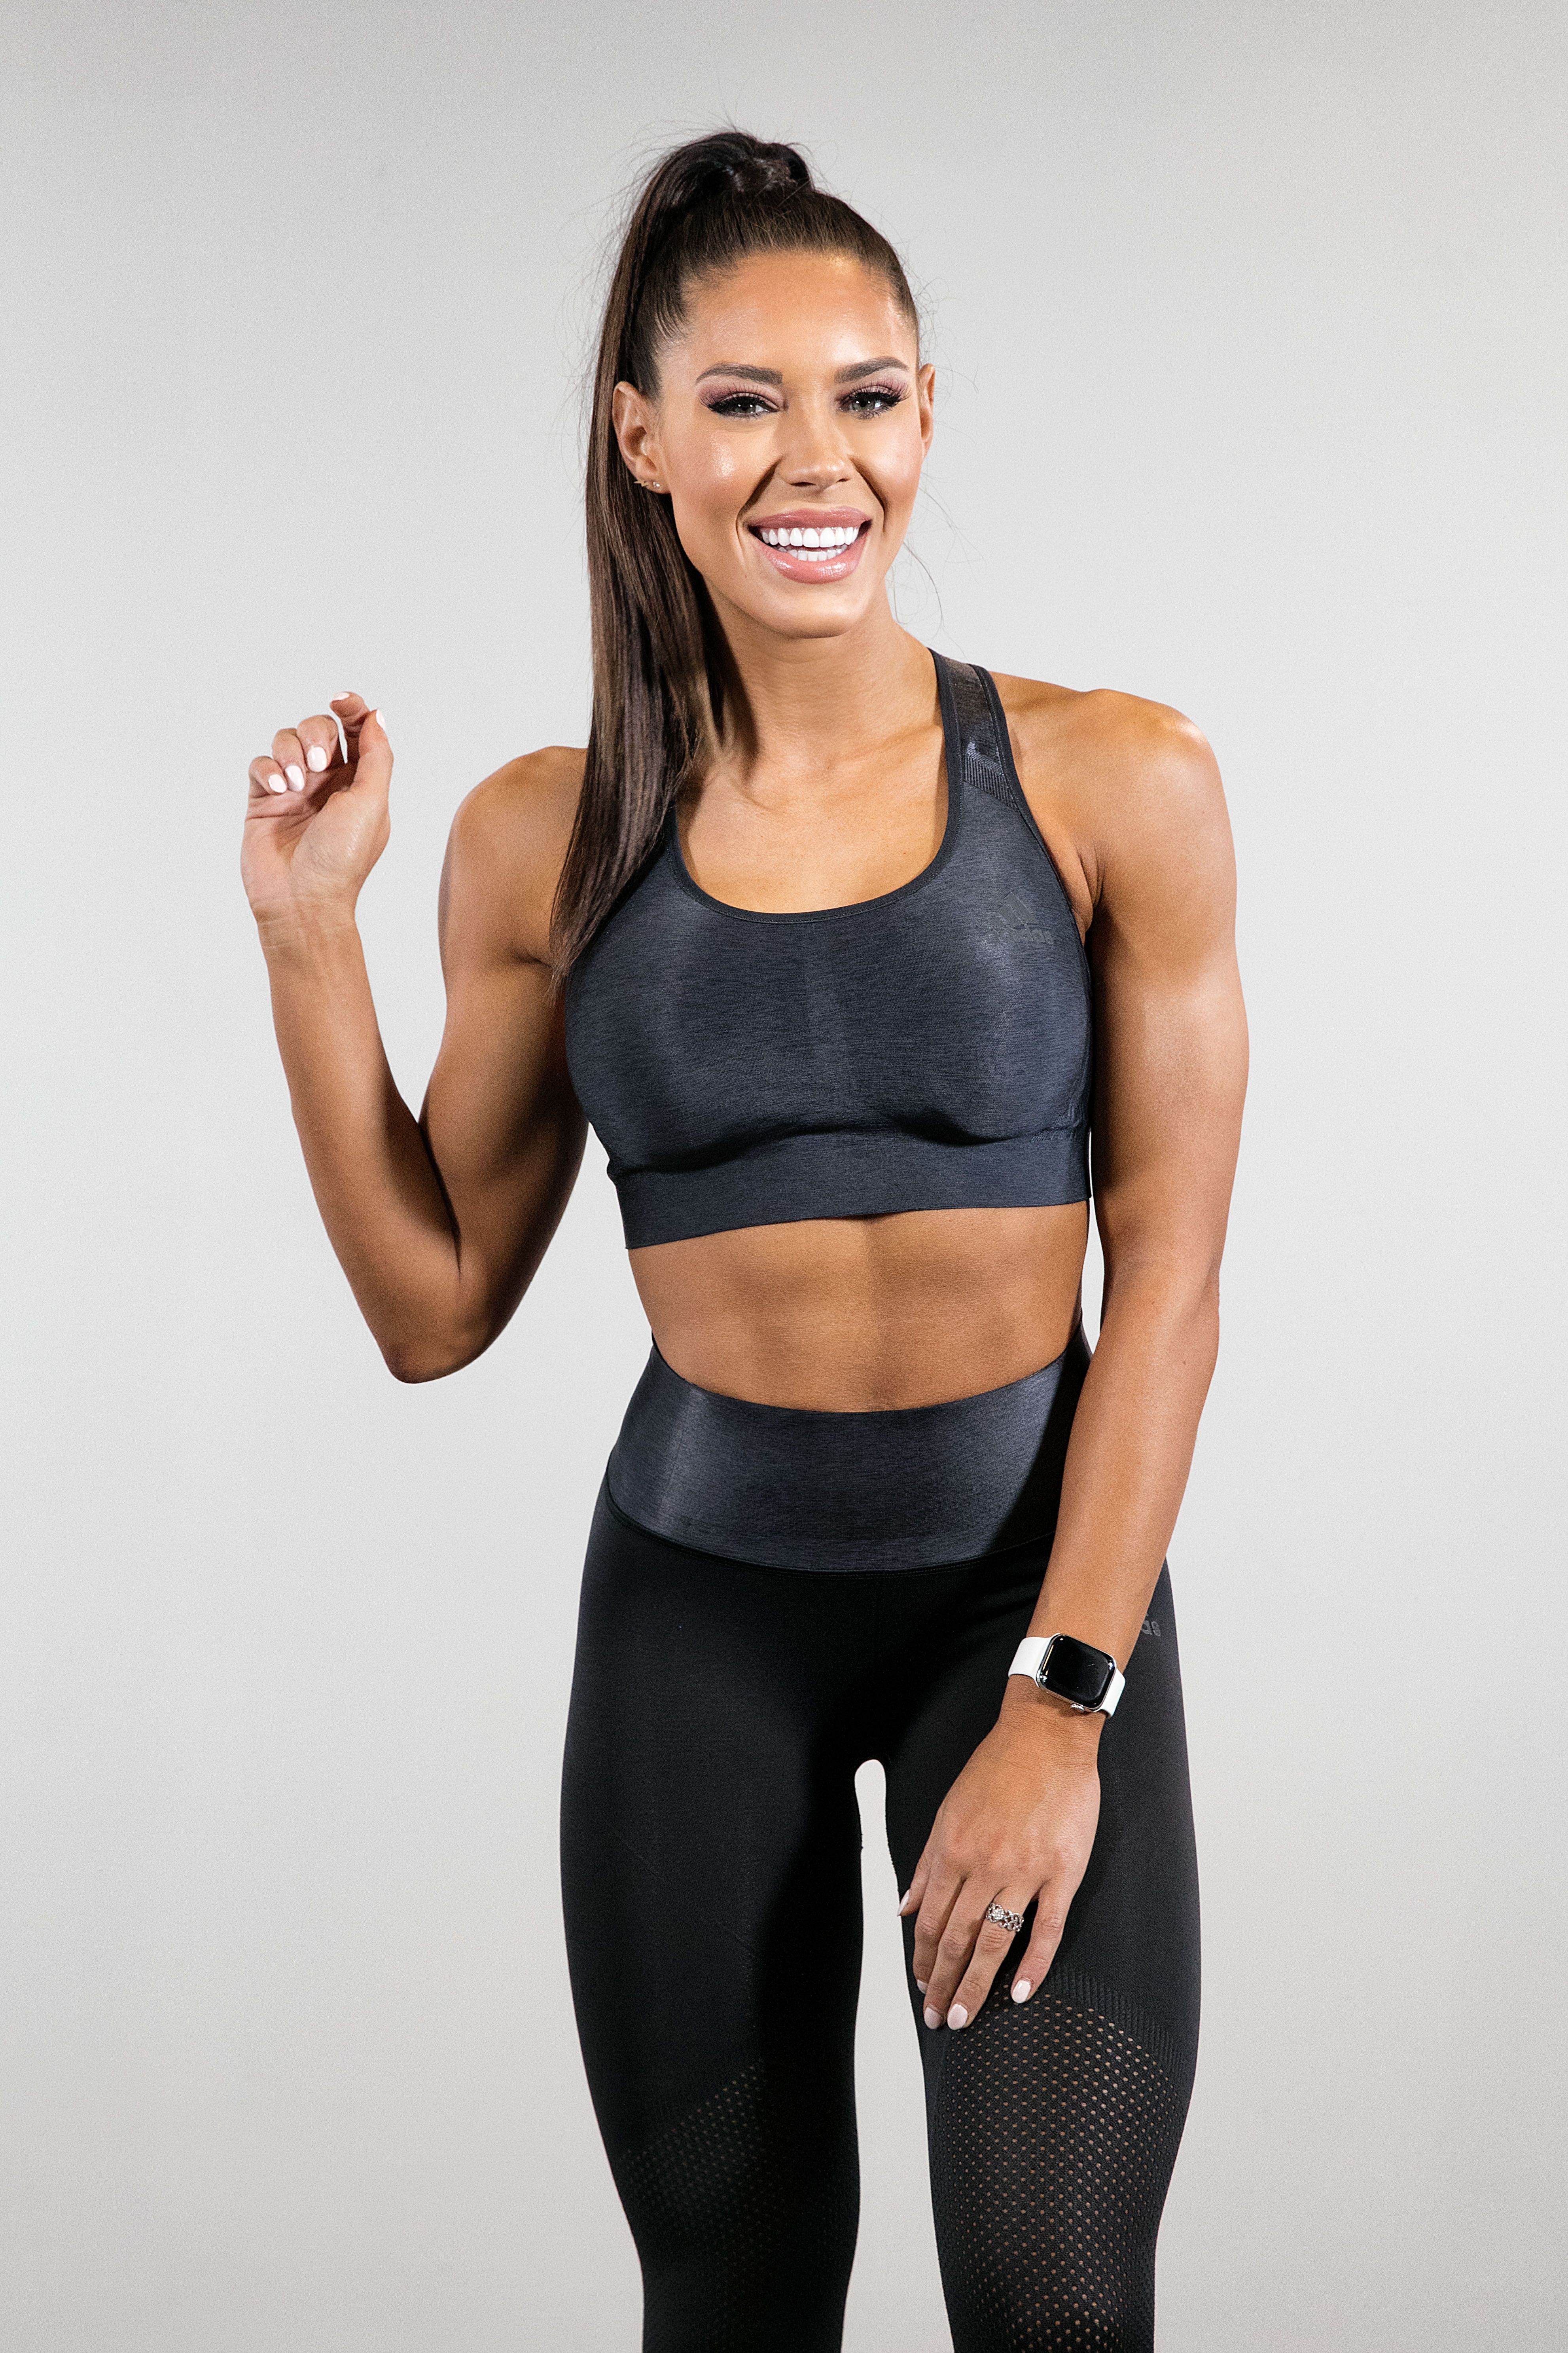 Sexy women with skinny arms